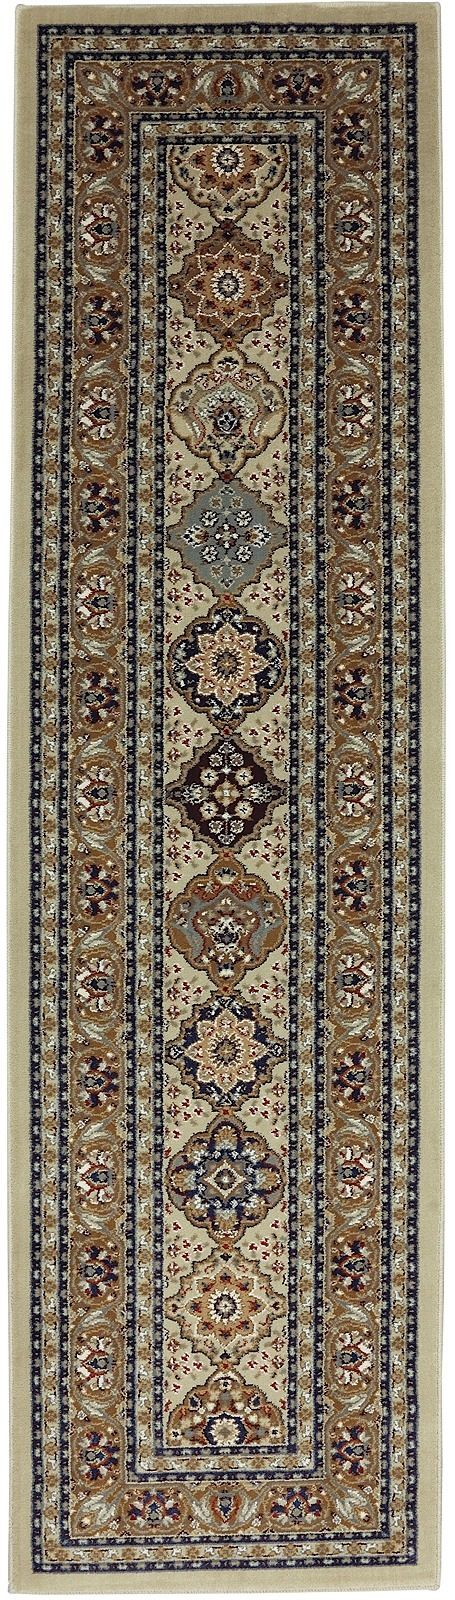 american rug craftsmen georgetown traditional area rug collection